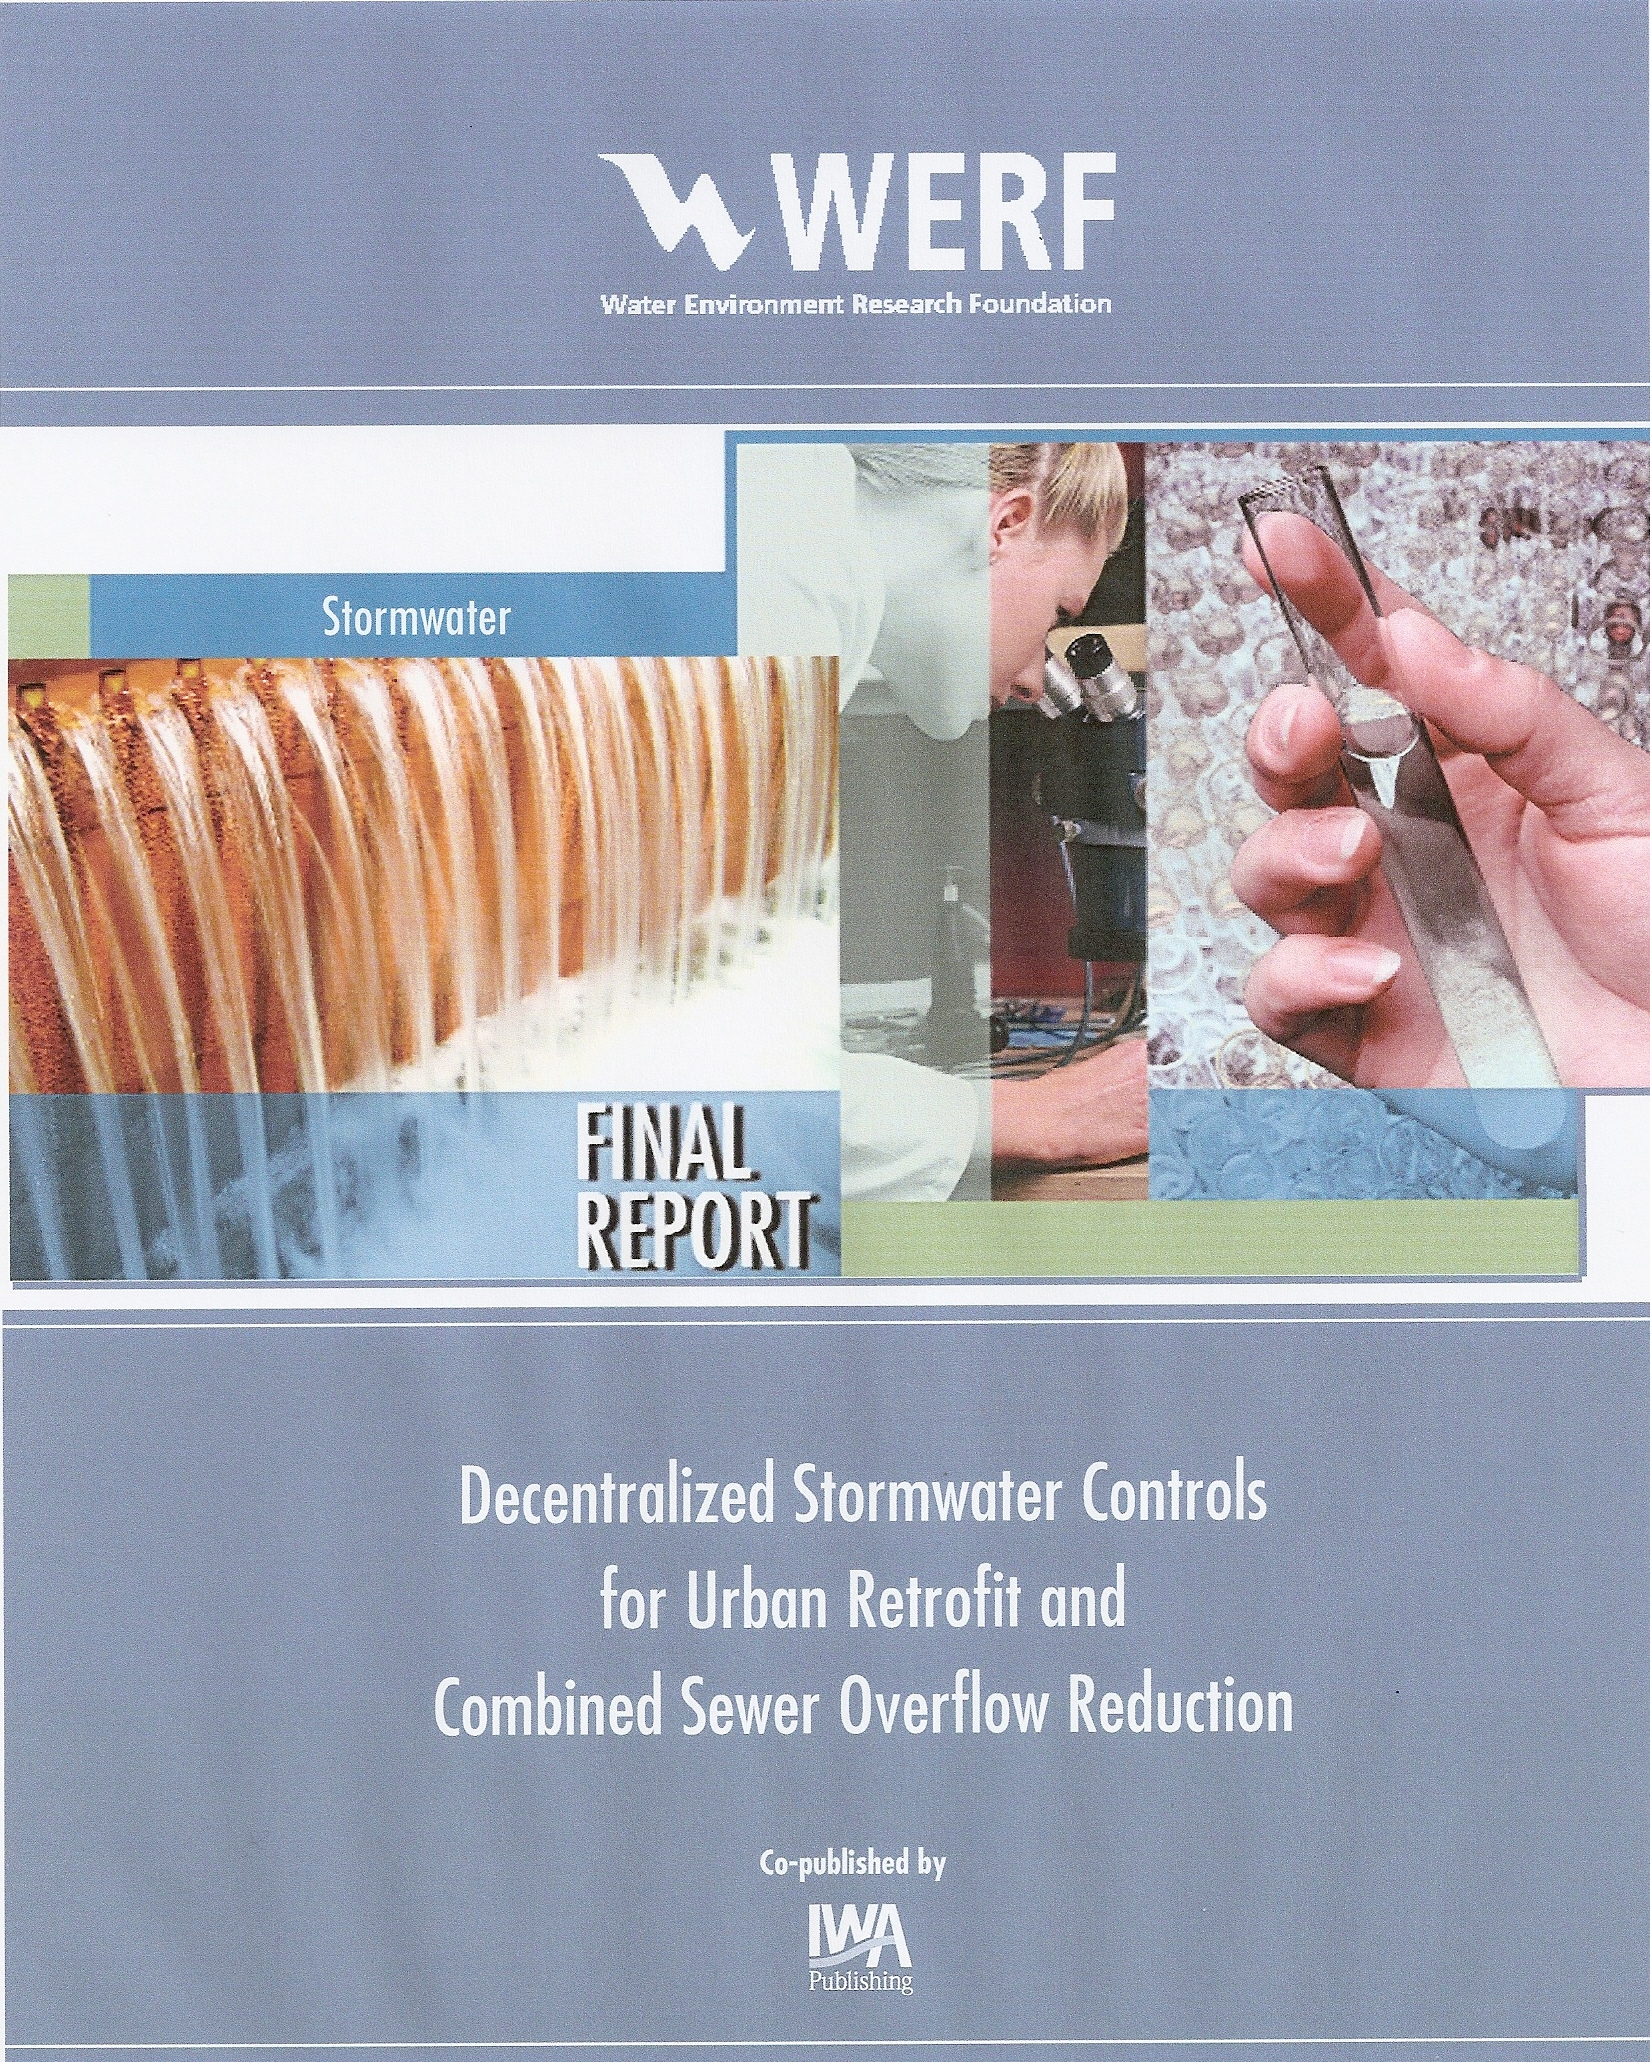 WERF_Decentralized Stormwater Controls_2006_cover